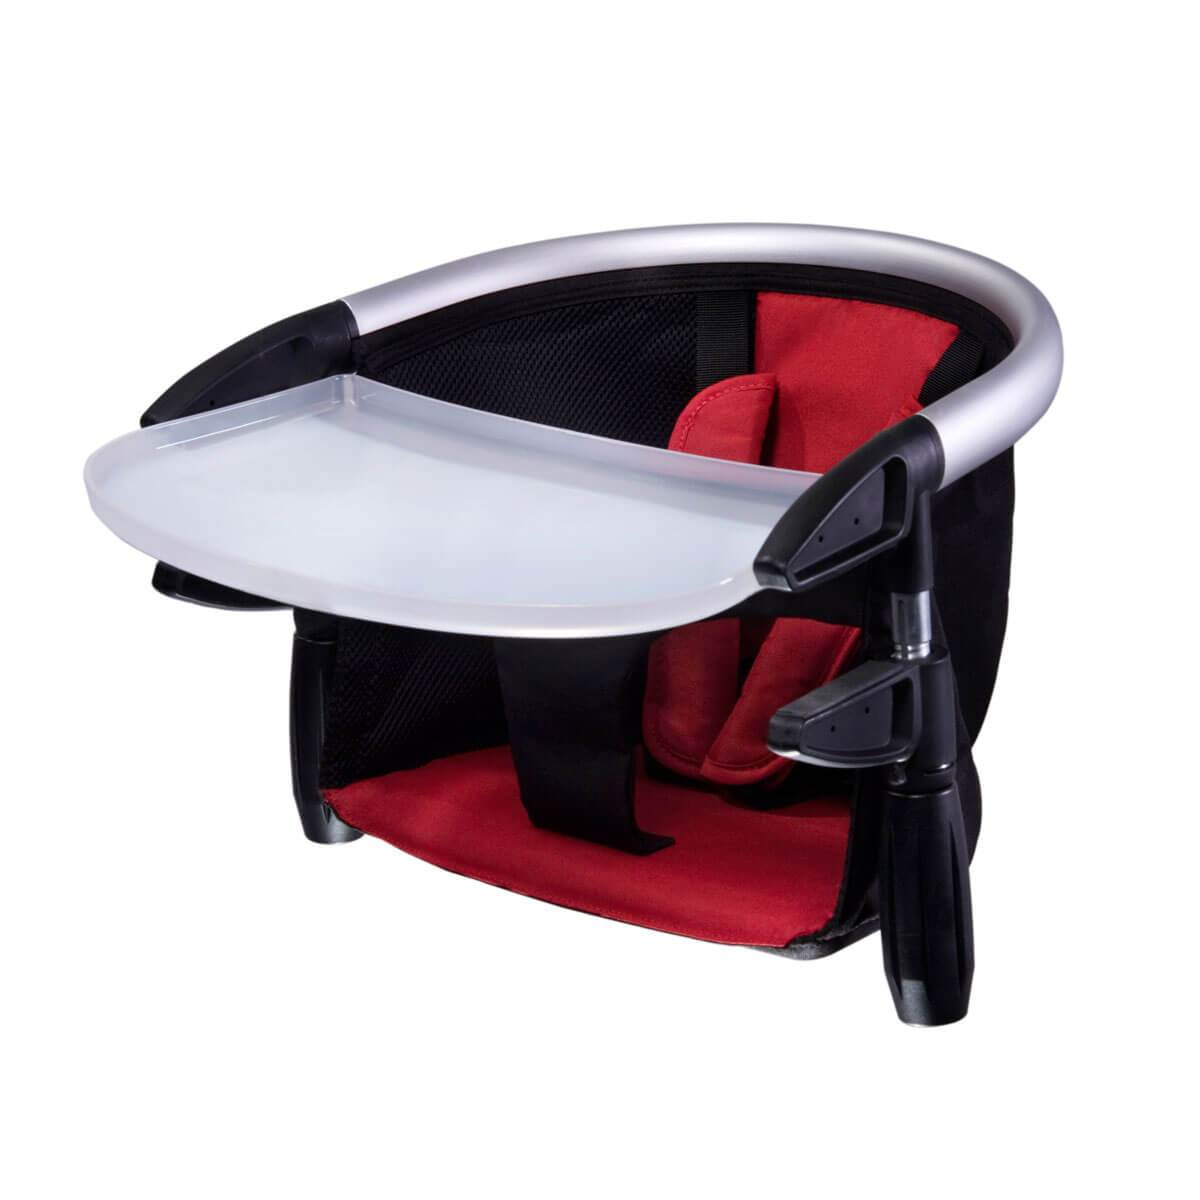 Phil & Teds Lobster High Chair Review